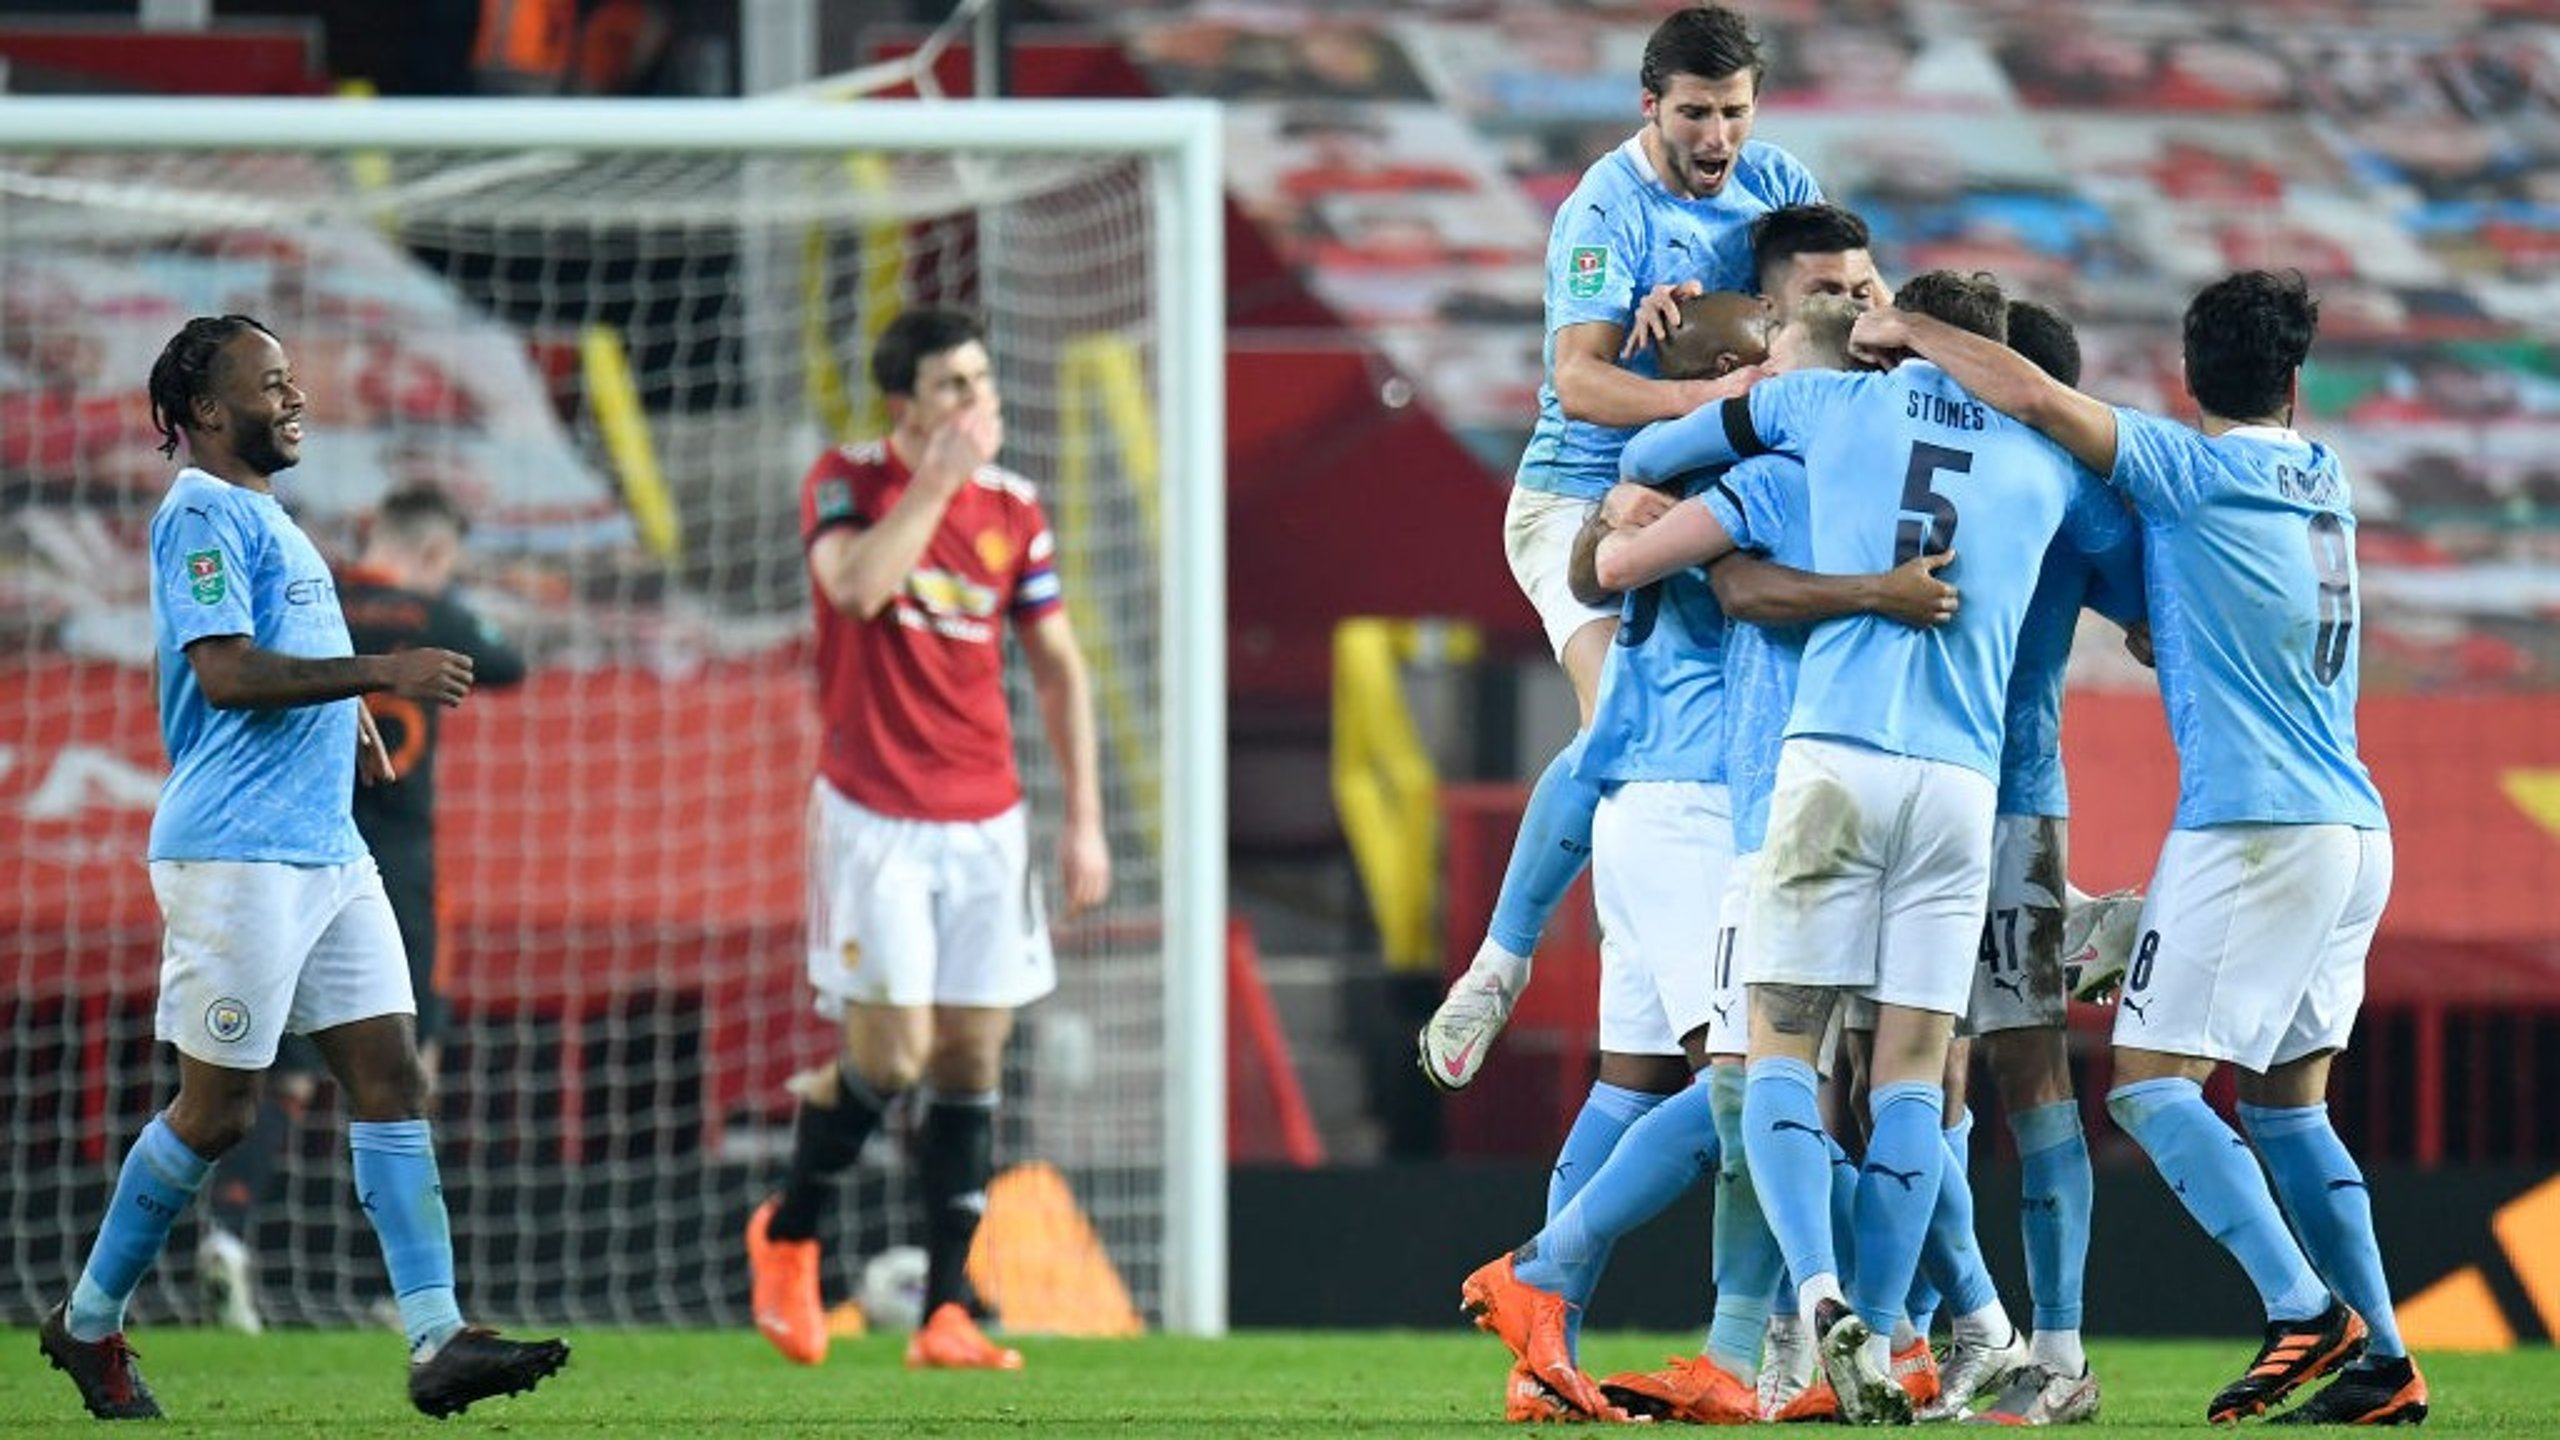 FERNATASTIC: Fernandinho is mobbed by his teammates